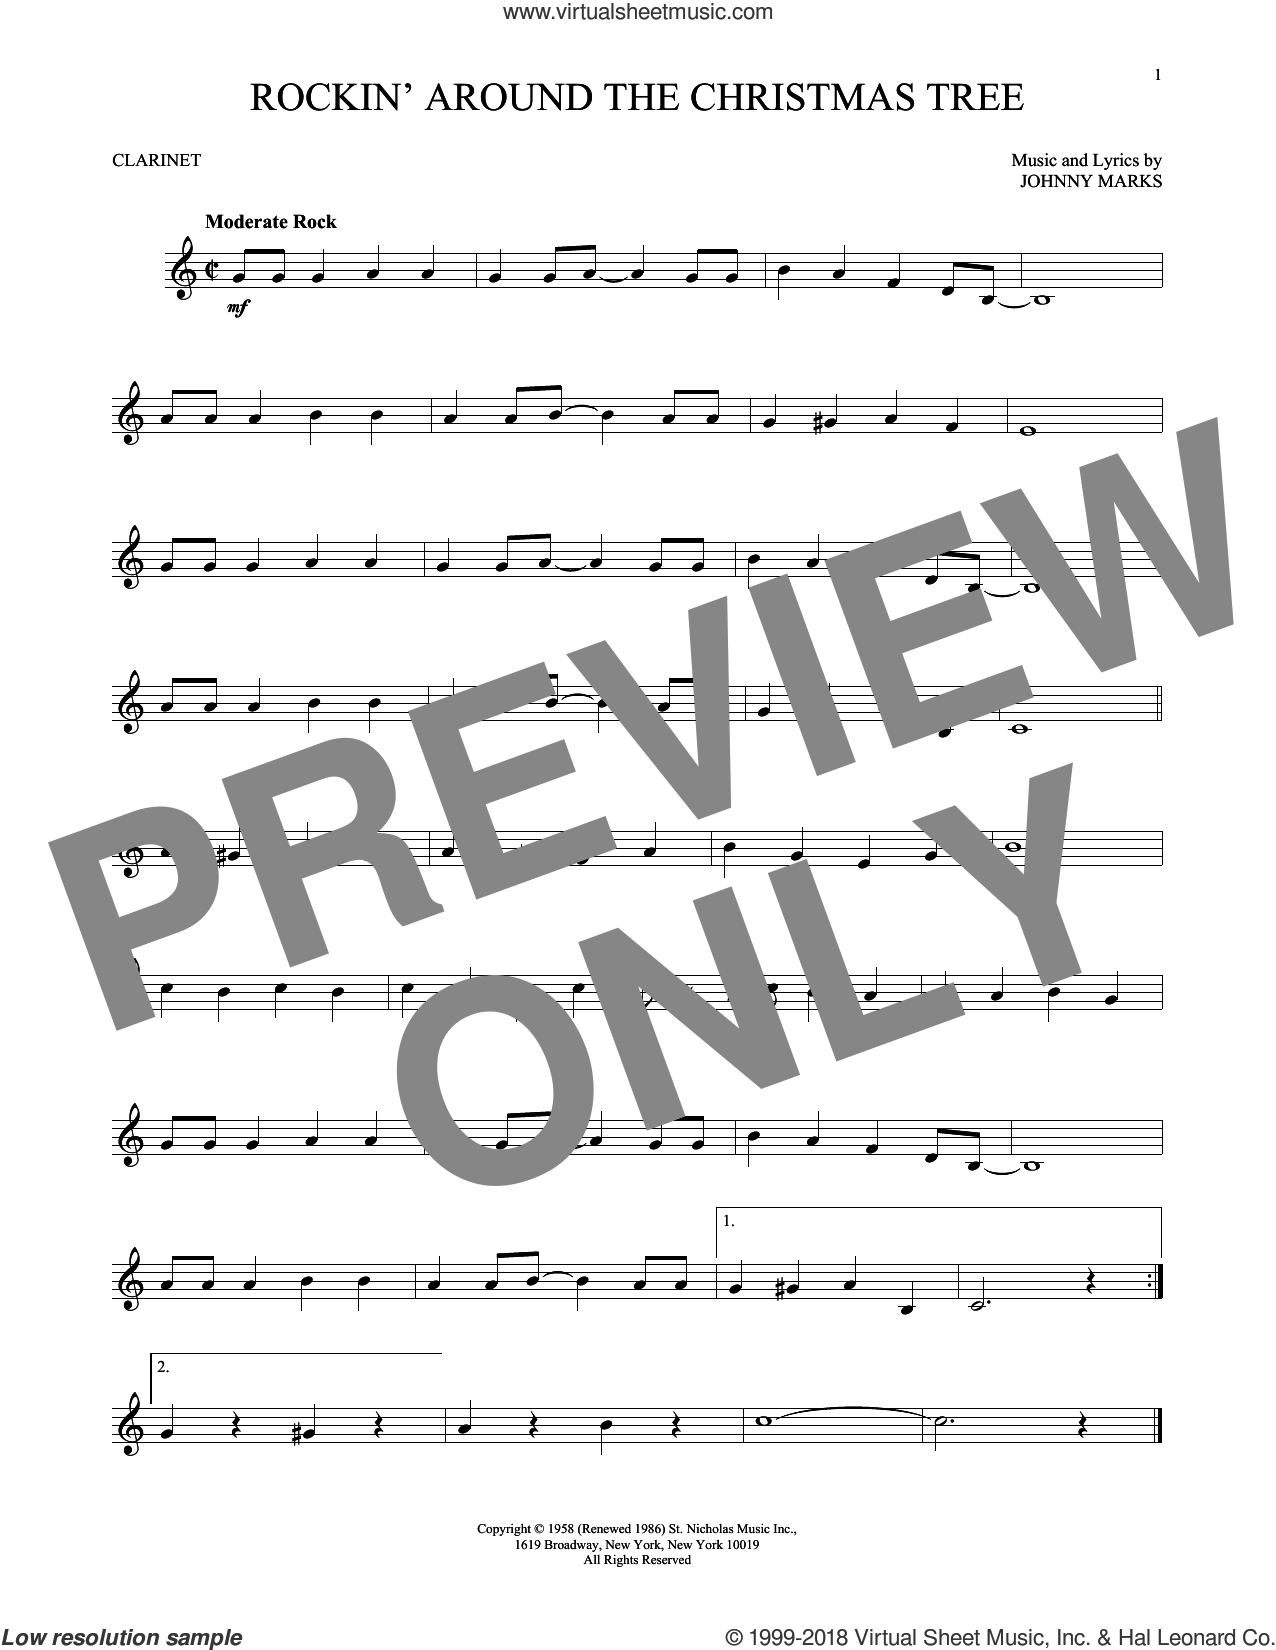 Rockin' Around The Christmas Tree sheet music for clarinet solo by Johnny Marks, intermediate skill level